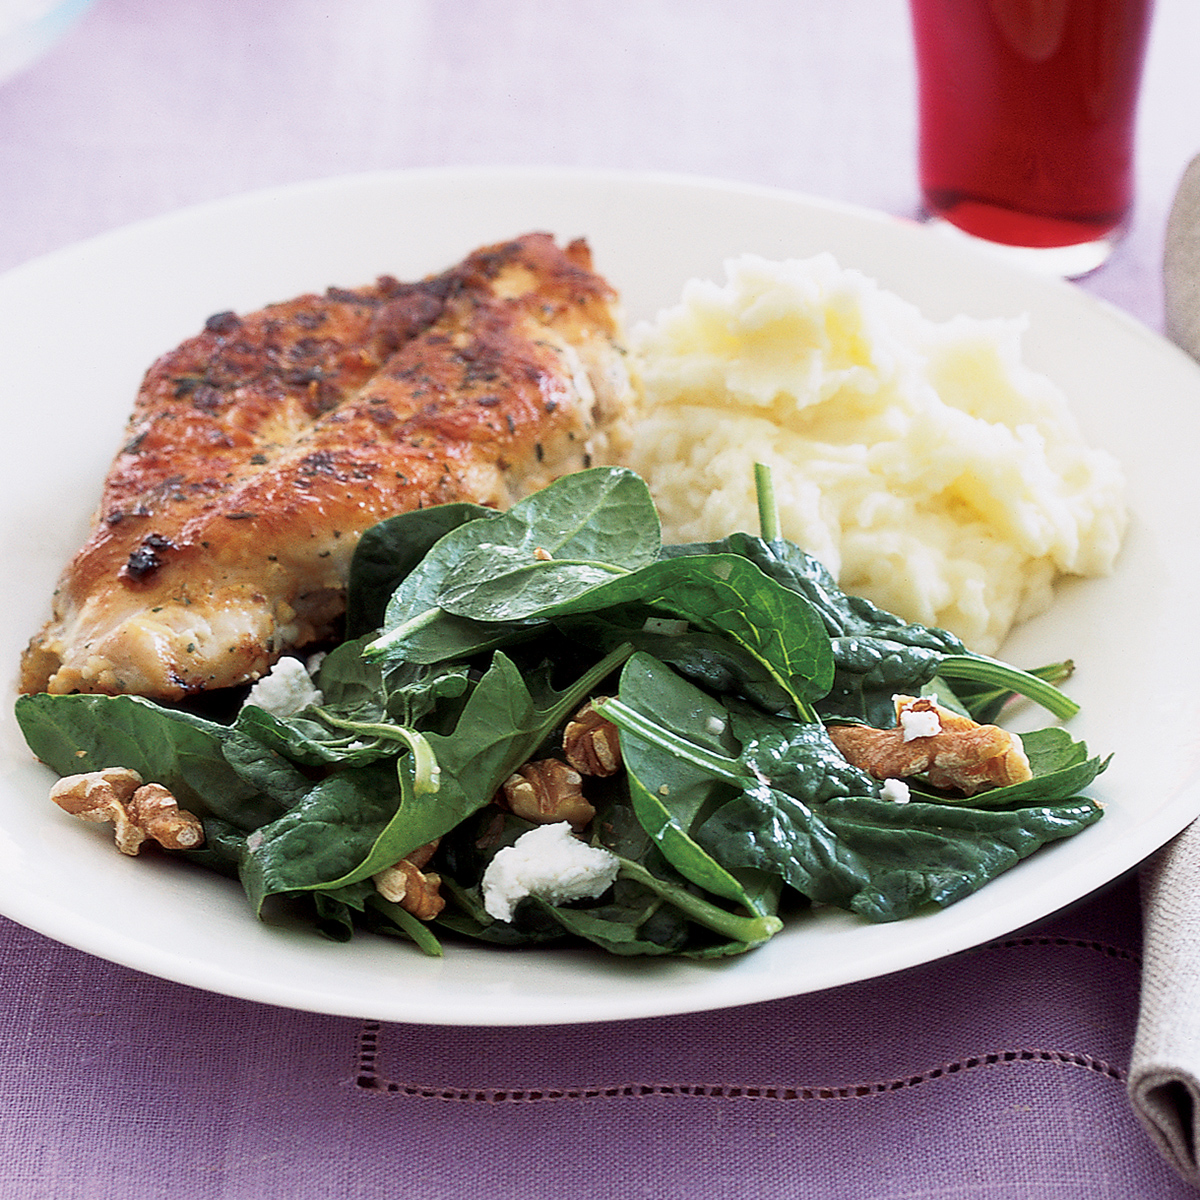 Panfried Chicken with Spinach Salad